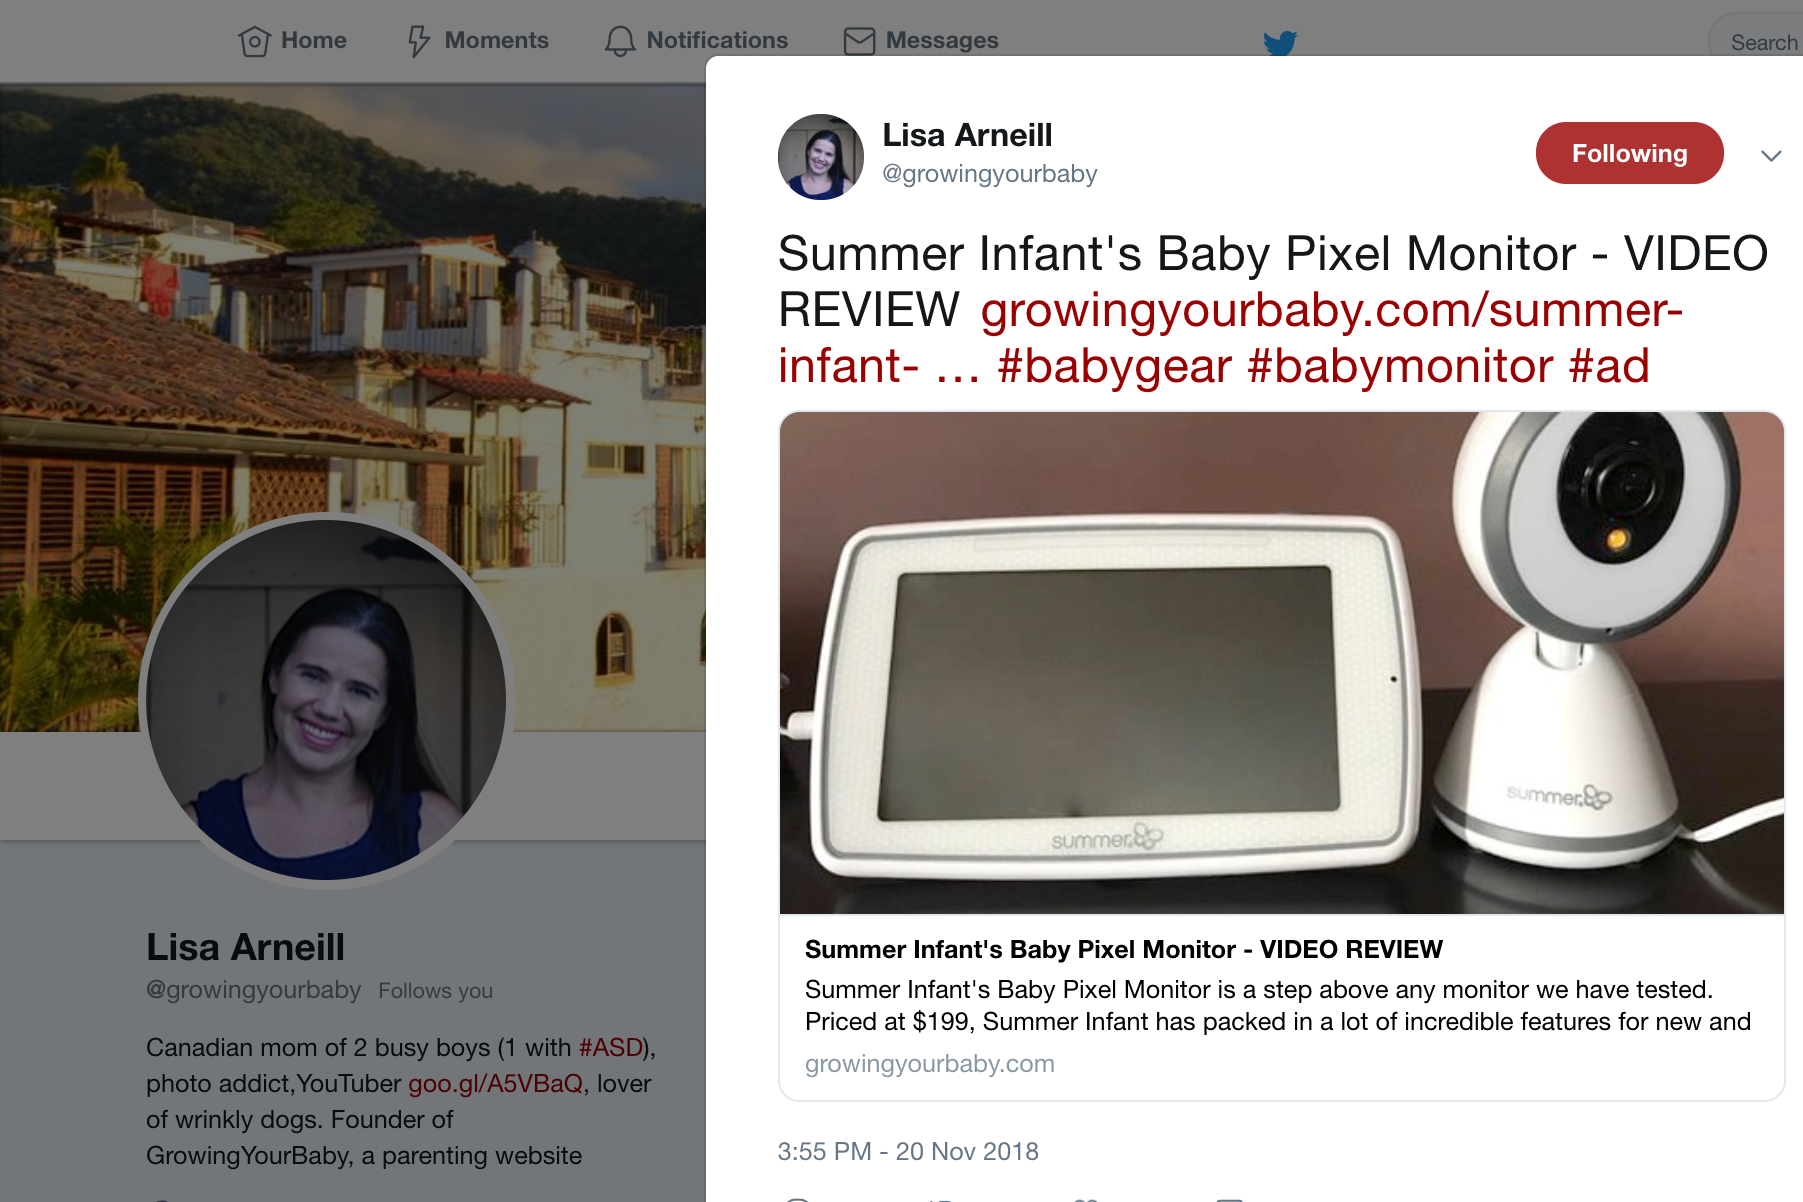 2018.11.19_Growing Your Baby, Twitter_Summer Infant Baby Pixel Monitor_original, cropped 3x2.png